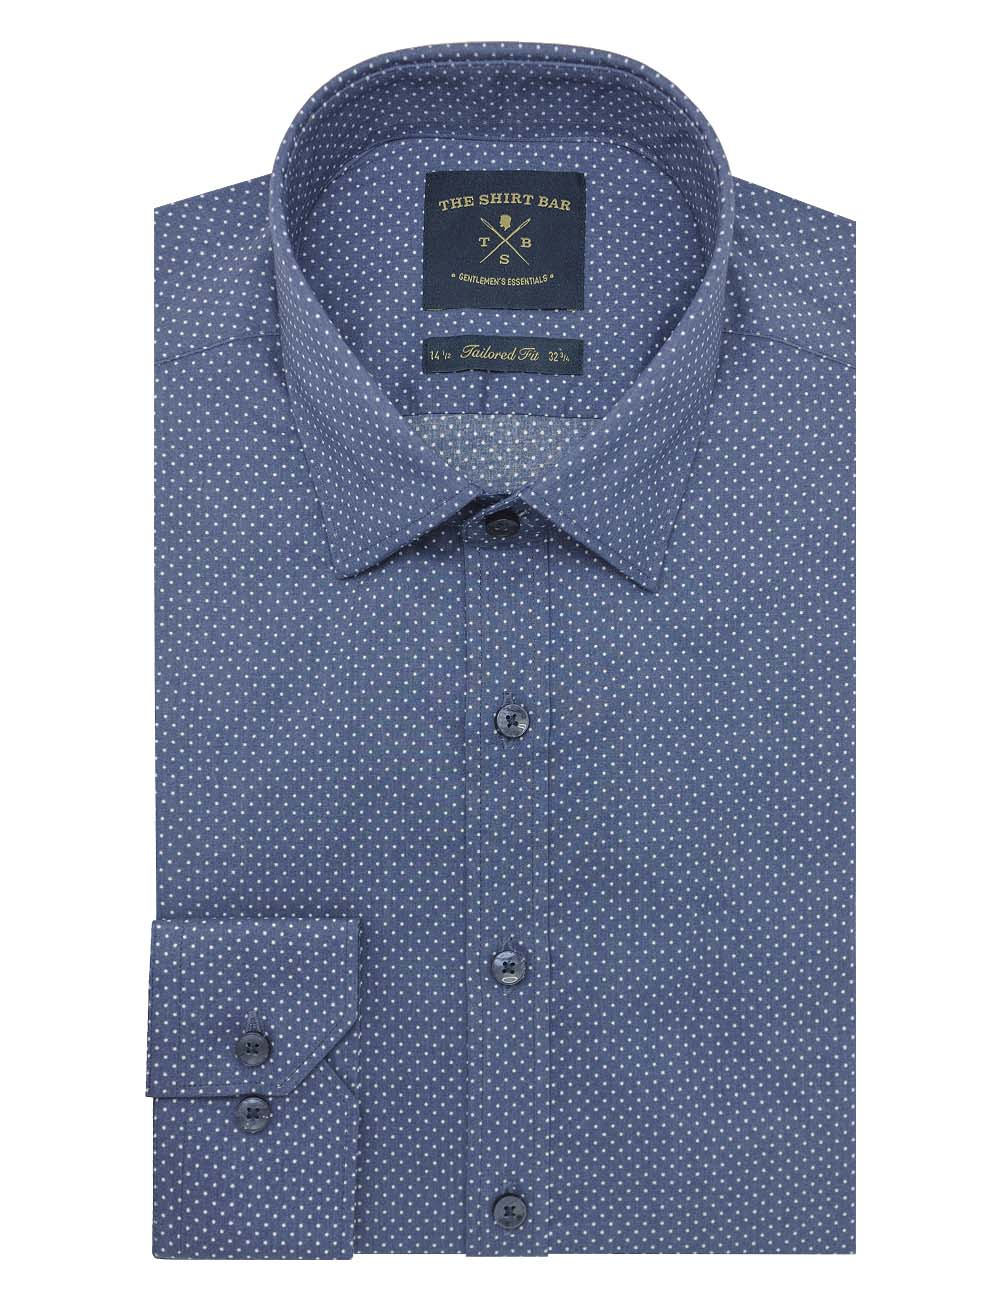 Blue With White Polka Dots Print Slim / Tailored Fit Long Sleeve Shirt - TF2A6.20